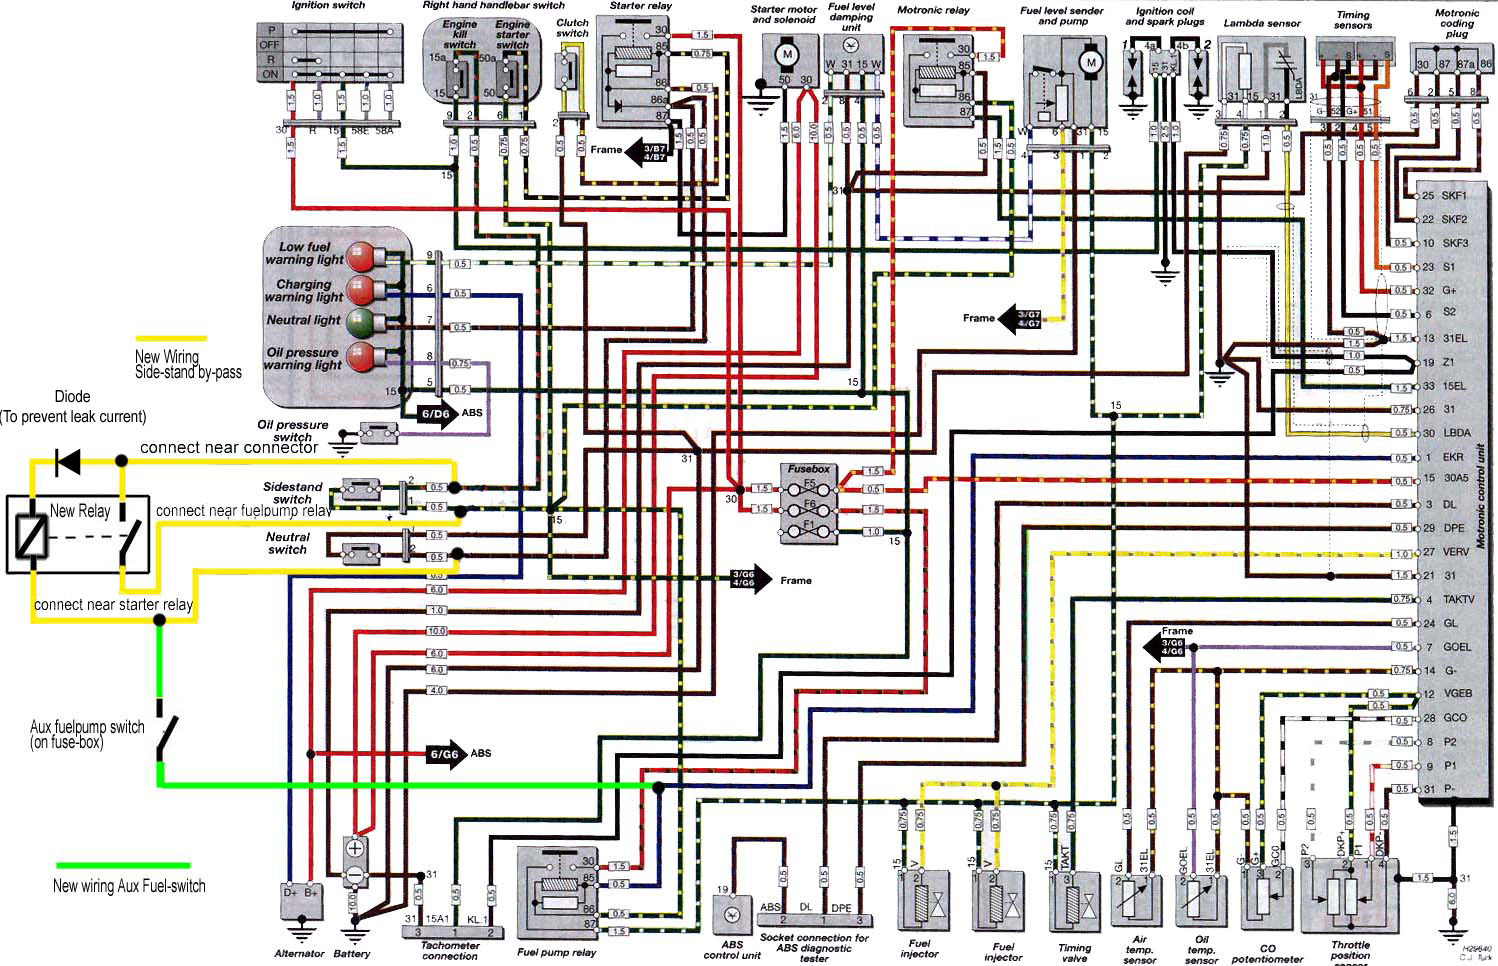 15908153 O r1150r tech info bmw 2002 wiring diagram at gsmx.co